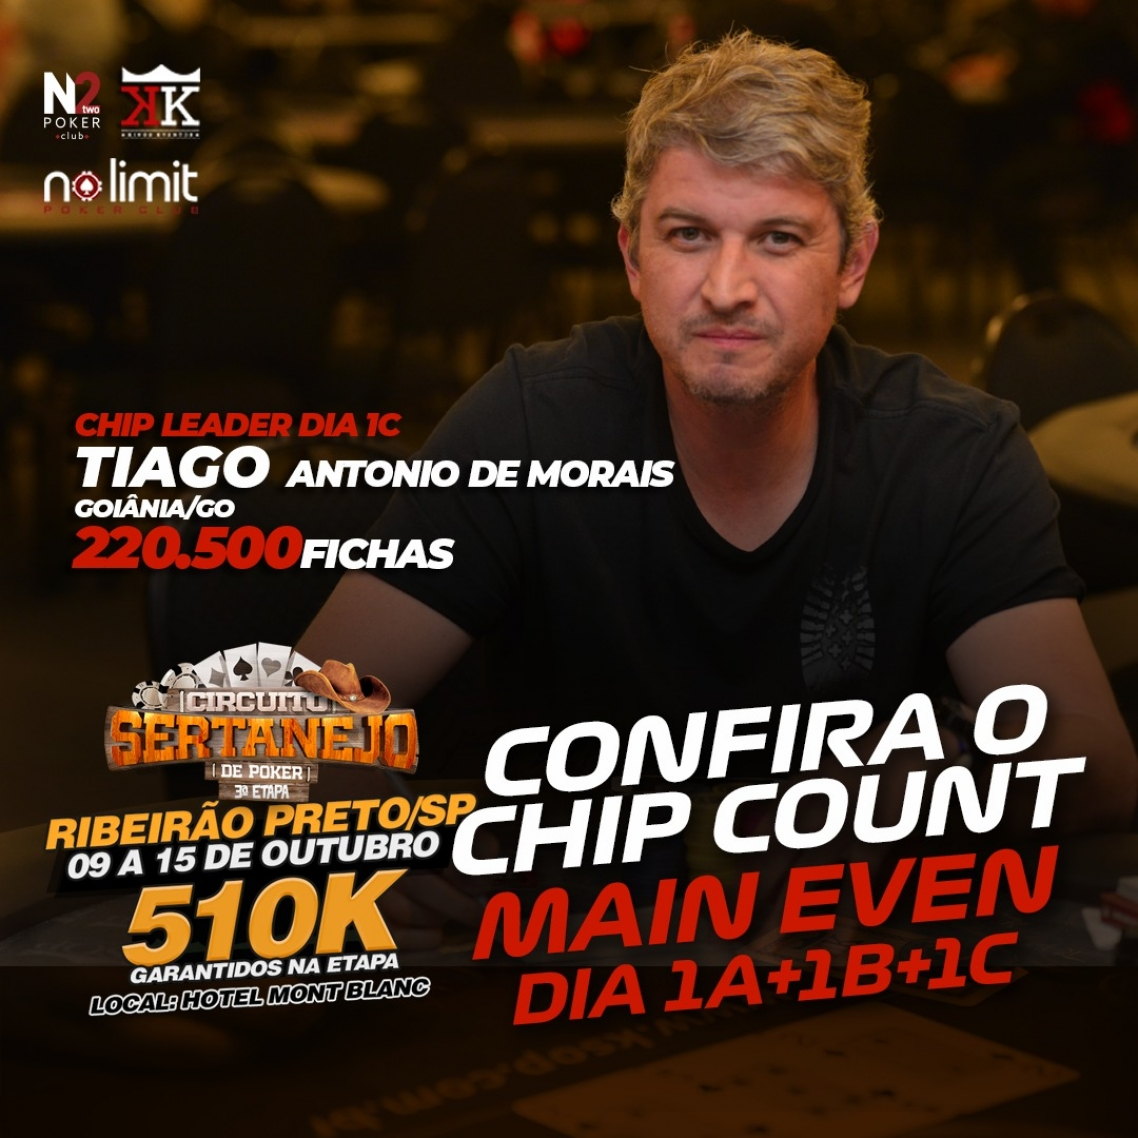 Tiago Antônio de Morais é o chip leader do dia 1C do Main Event